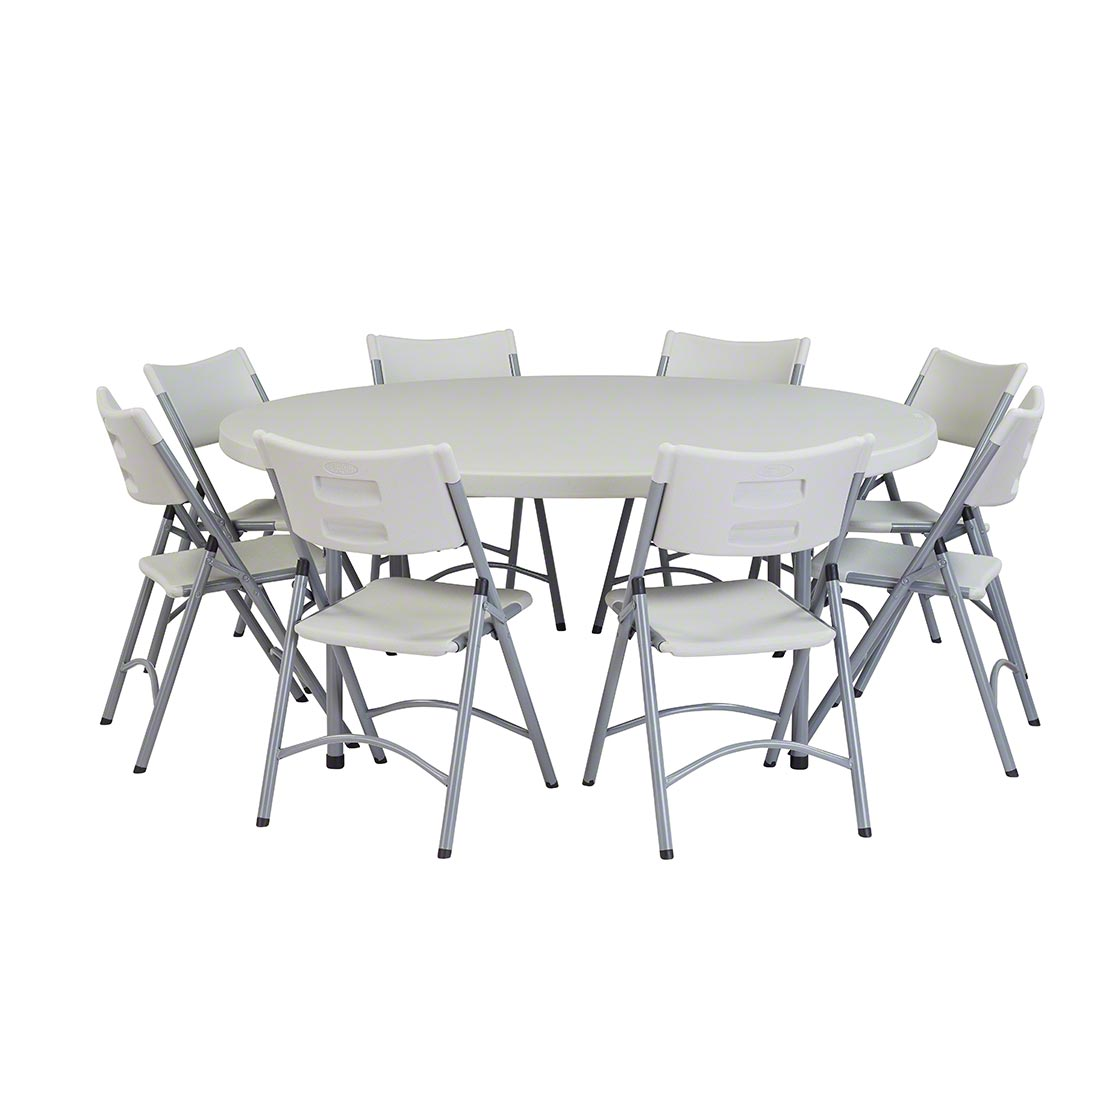 Nps 71 Round Folding Table Chairs Package Stagedrop